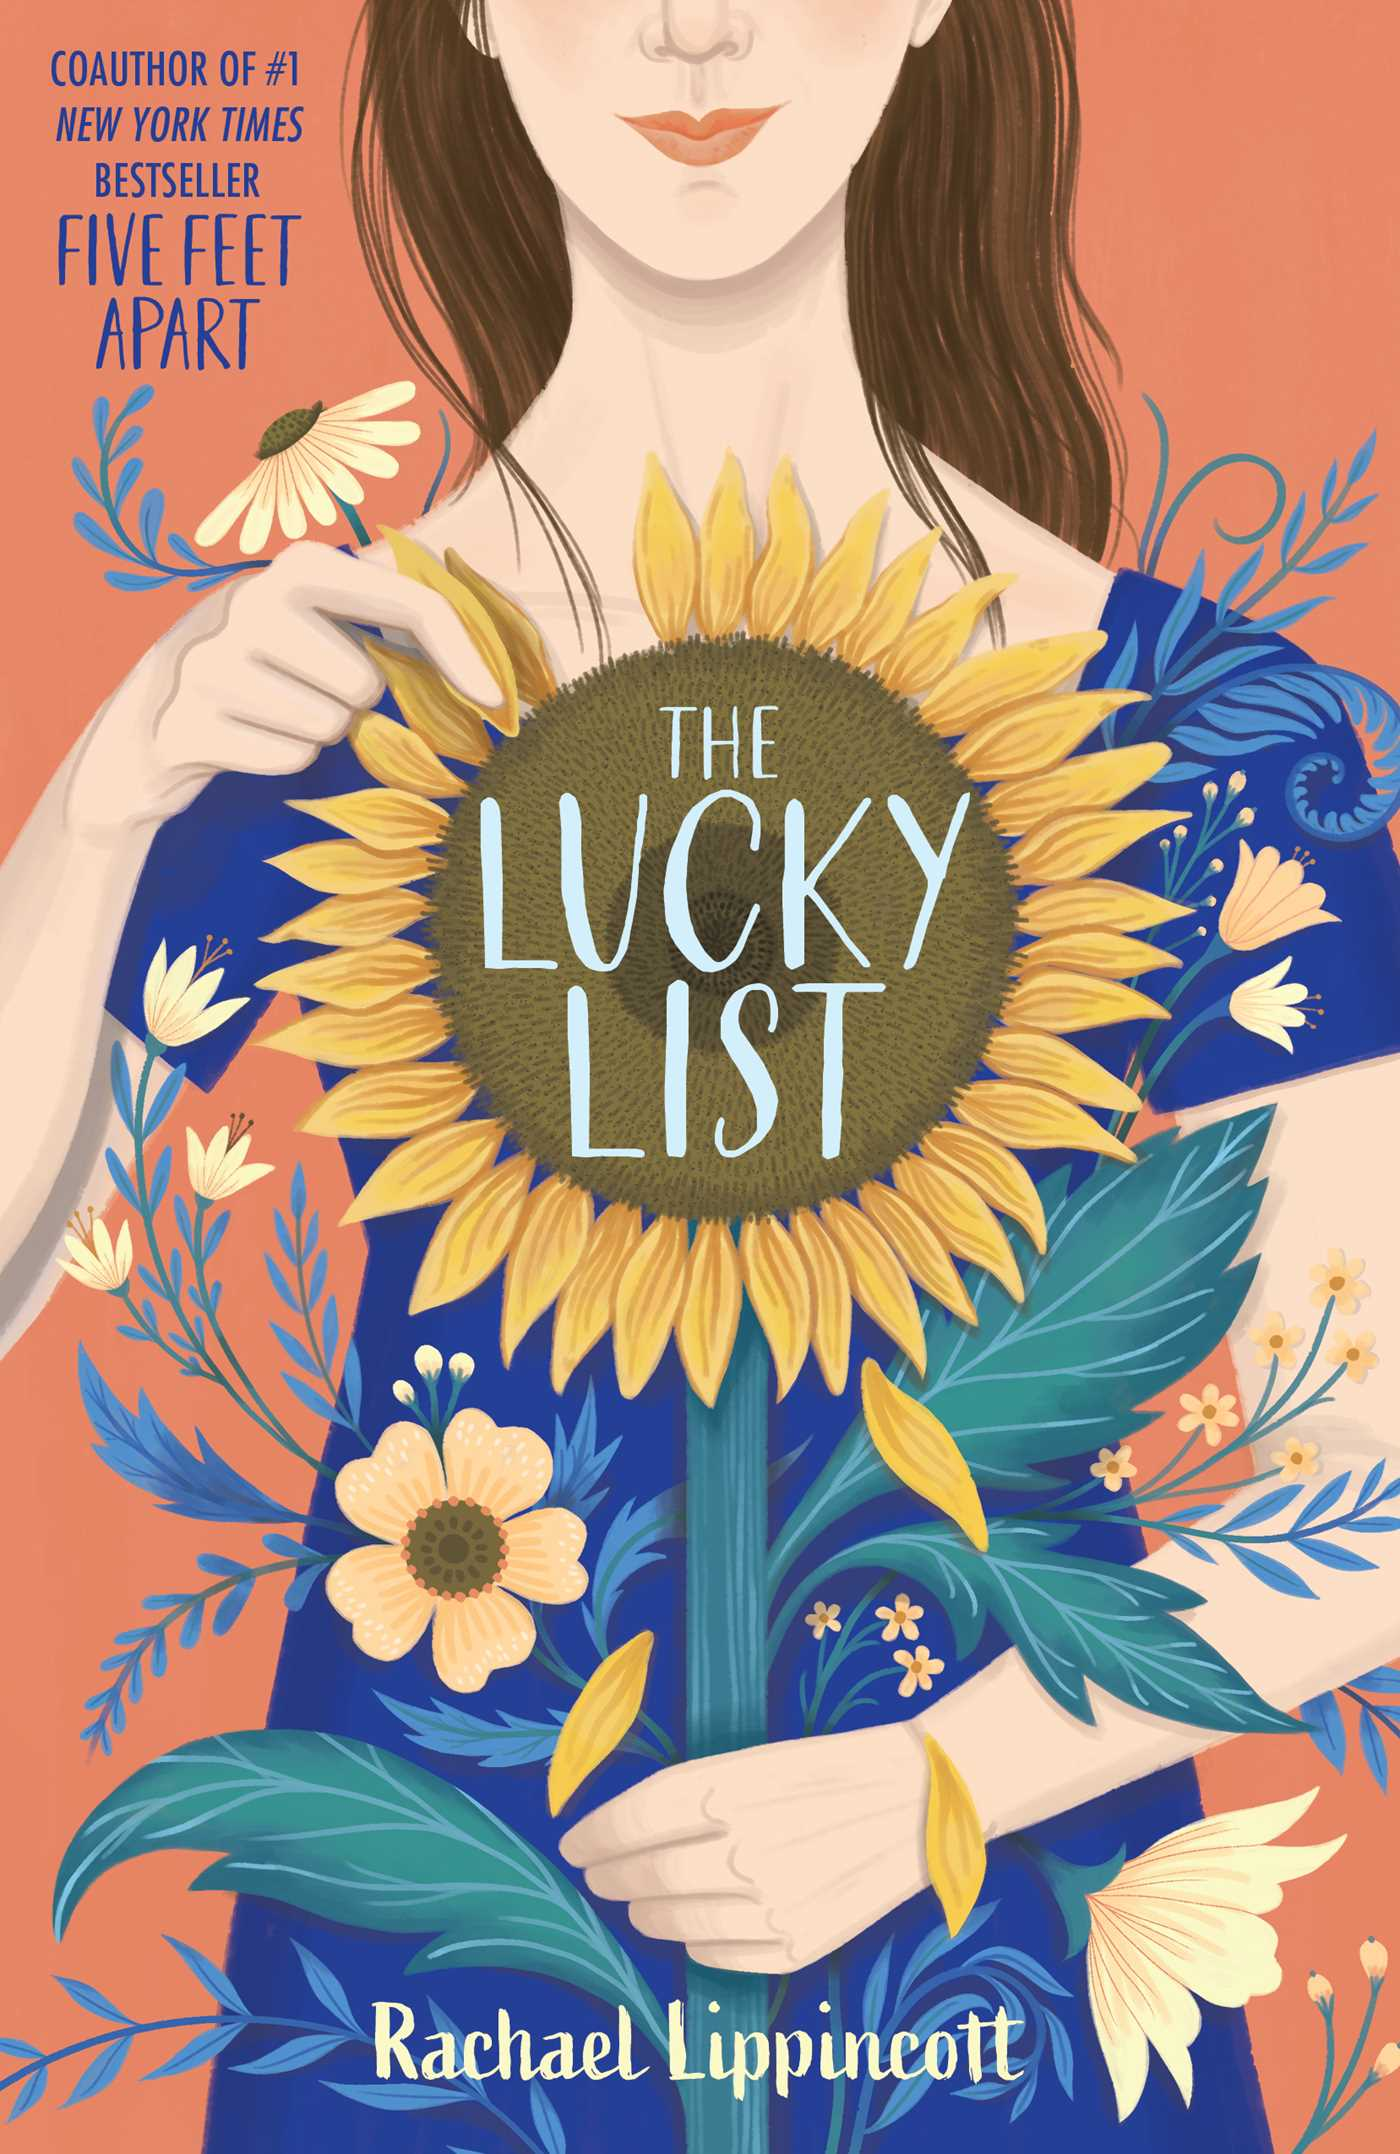 The Lucky List | Book by Rachael Lippincott | Official Publisher Page |  Simon & Schuster